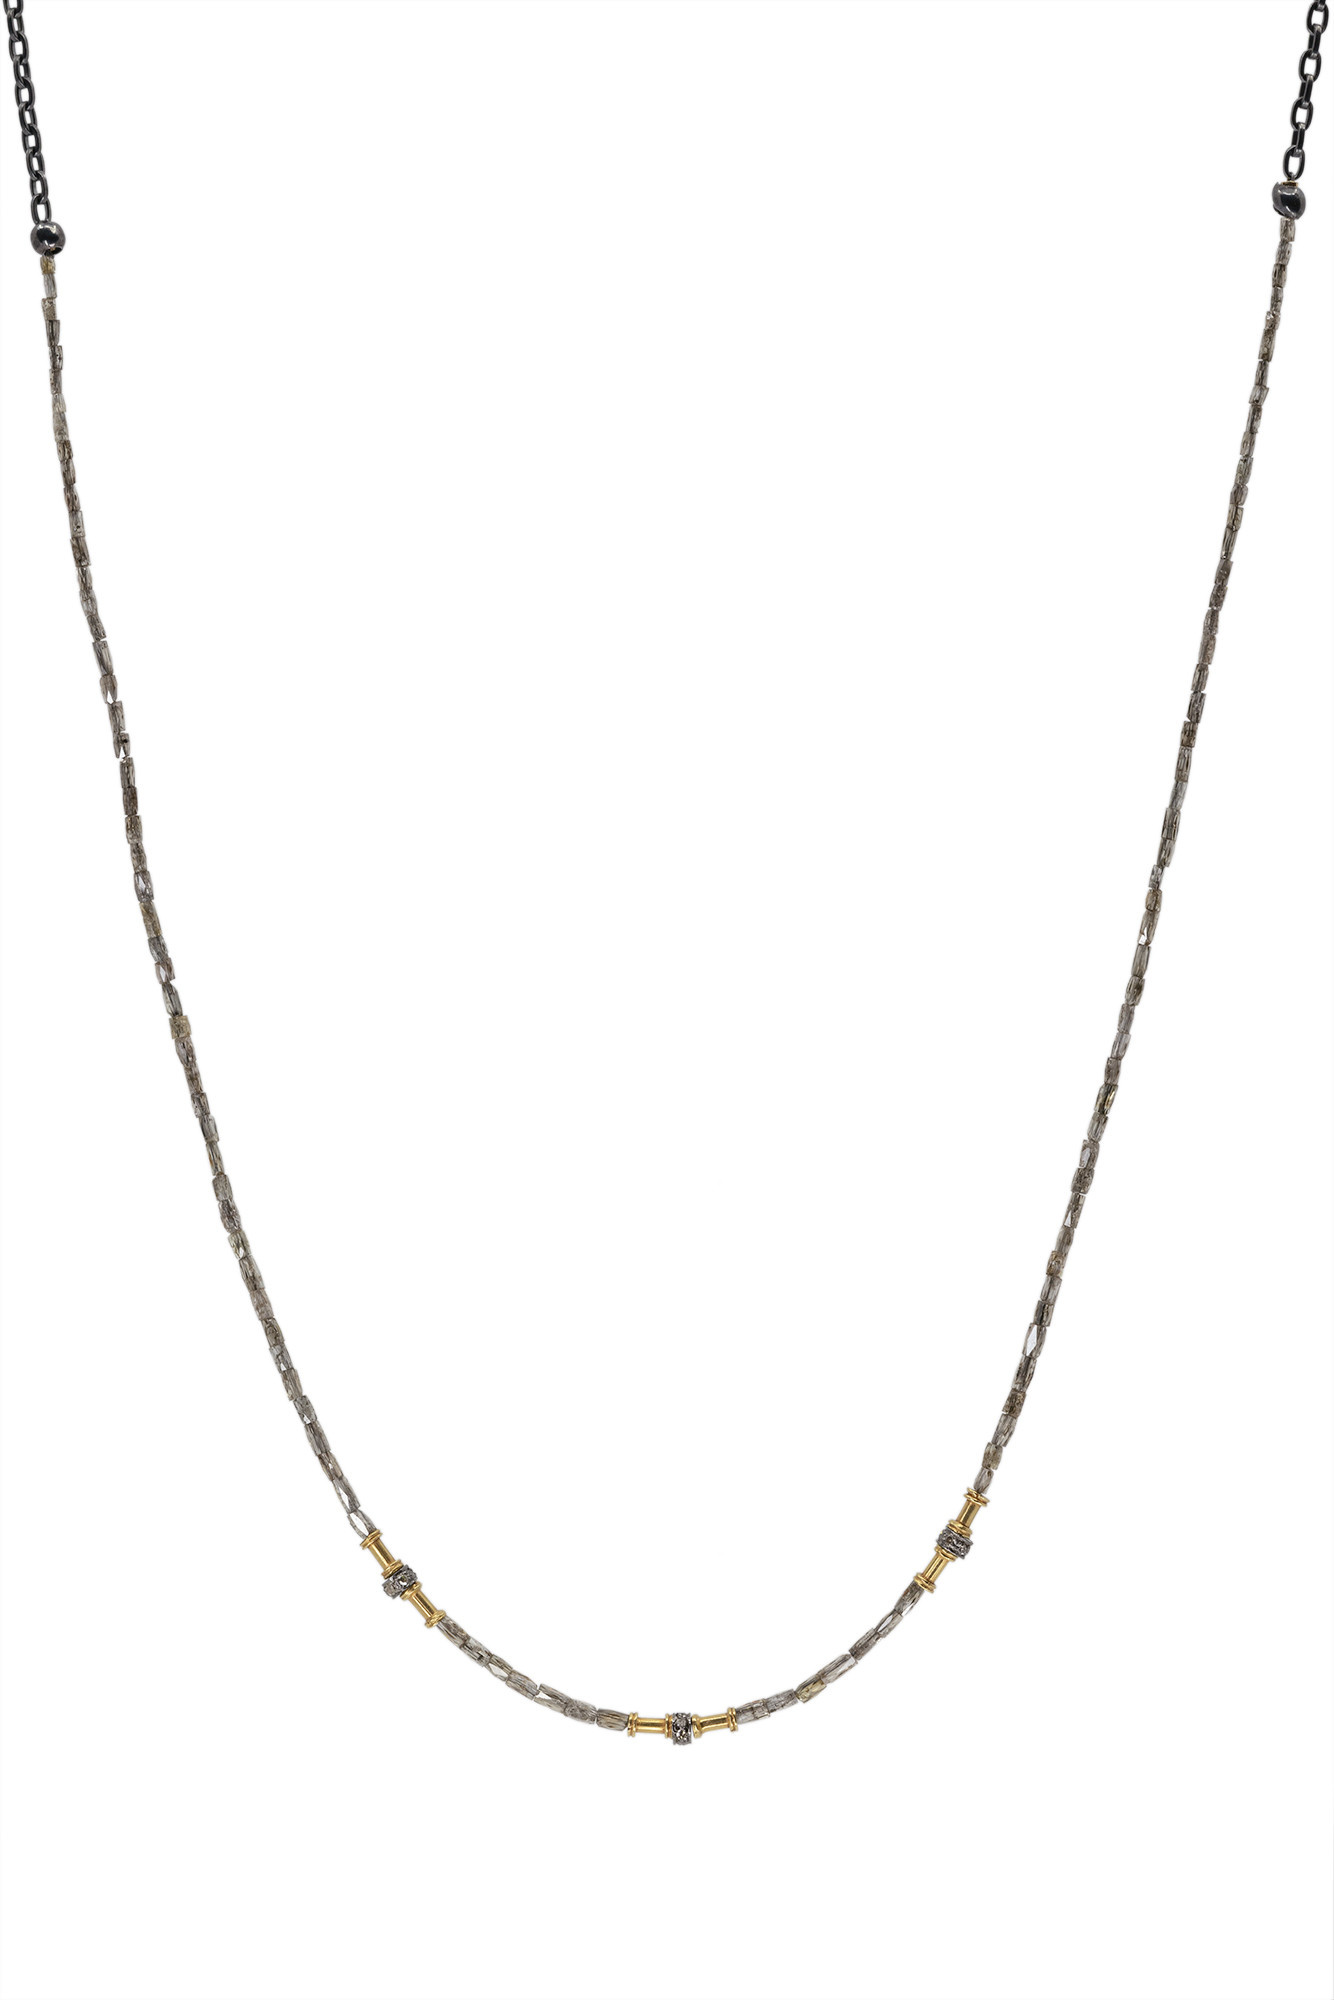 Diamond Strand w/ Gold Accents on Silver Chain